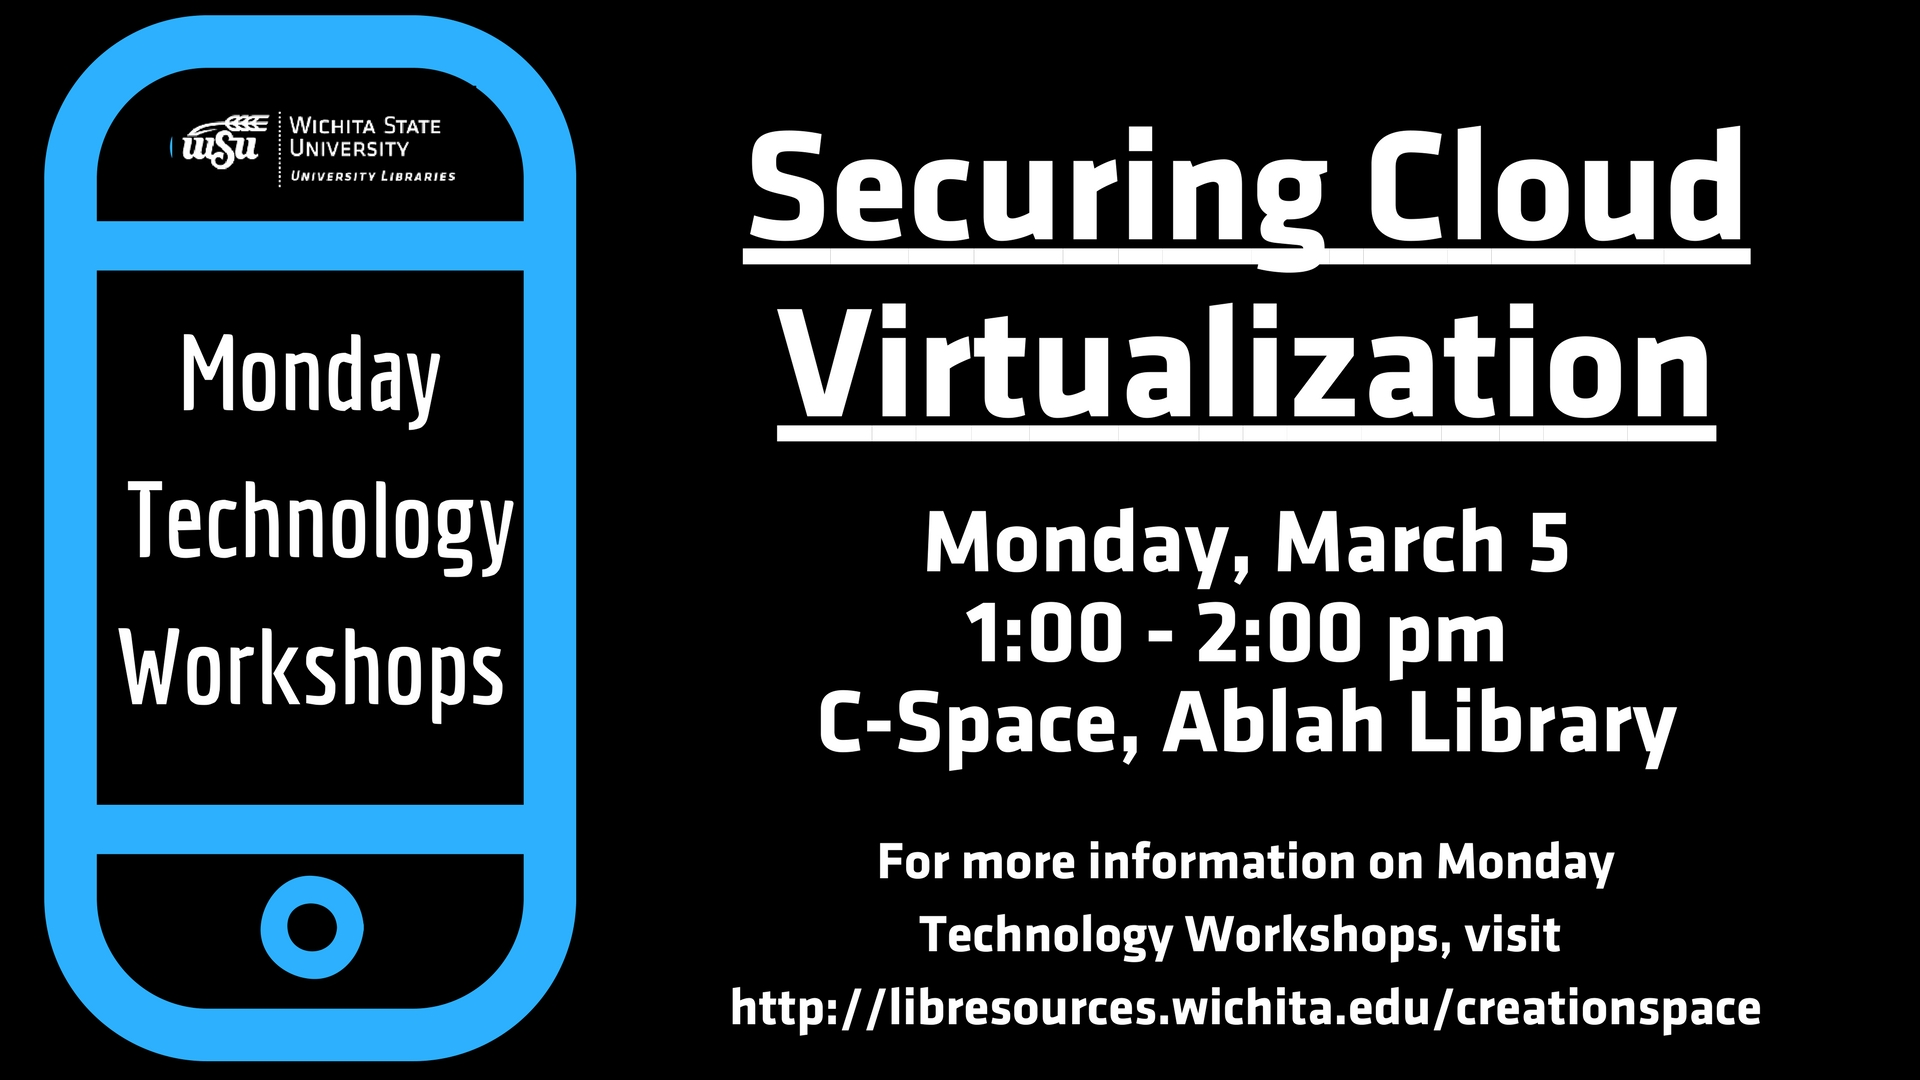 Monday Technology Workshop - Securing Cloud Virtualization